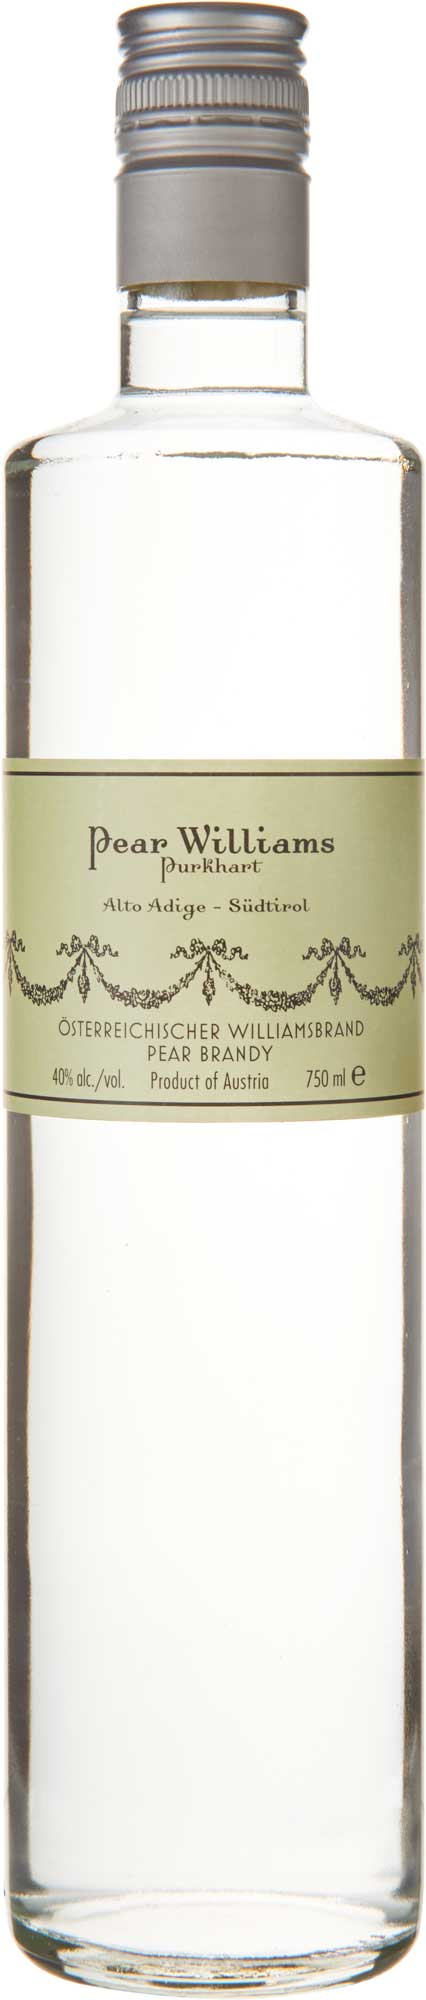 Purkhart Pear Williams Eau-de-Vie